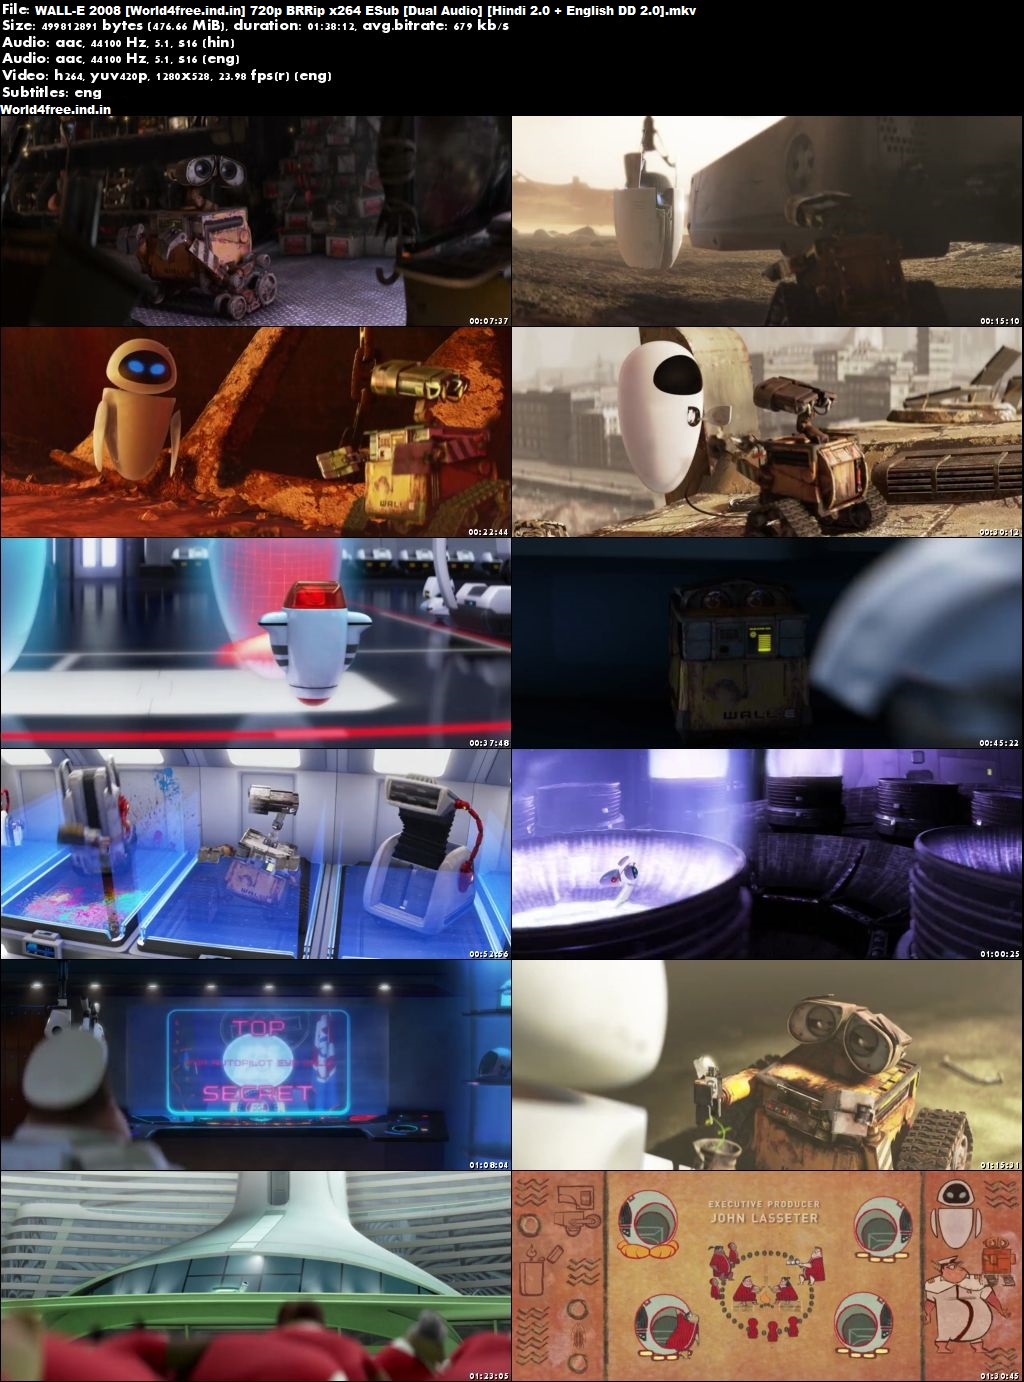 WALL-E 2008 worldfree4u Dual Audio BRRip 720p Hindi English